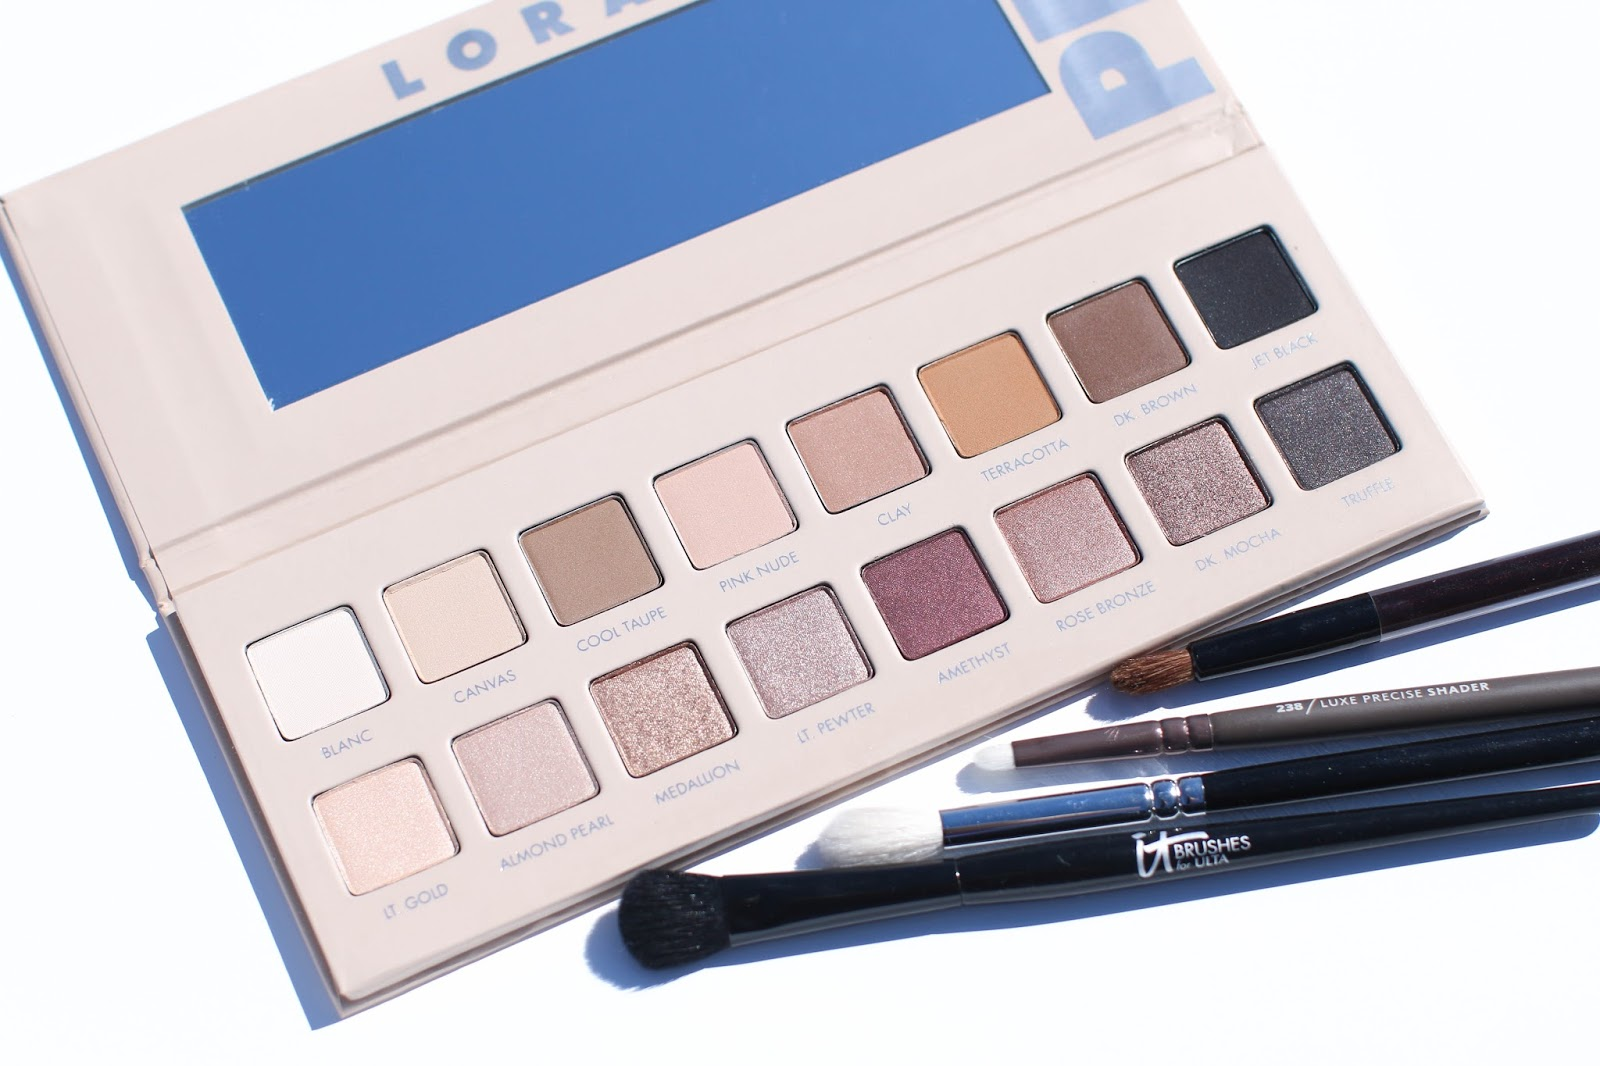 Review of the New Lorac Pro Palette 3 with Swatches